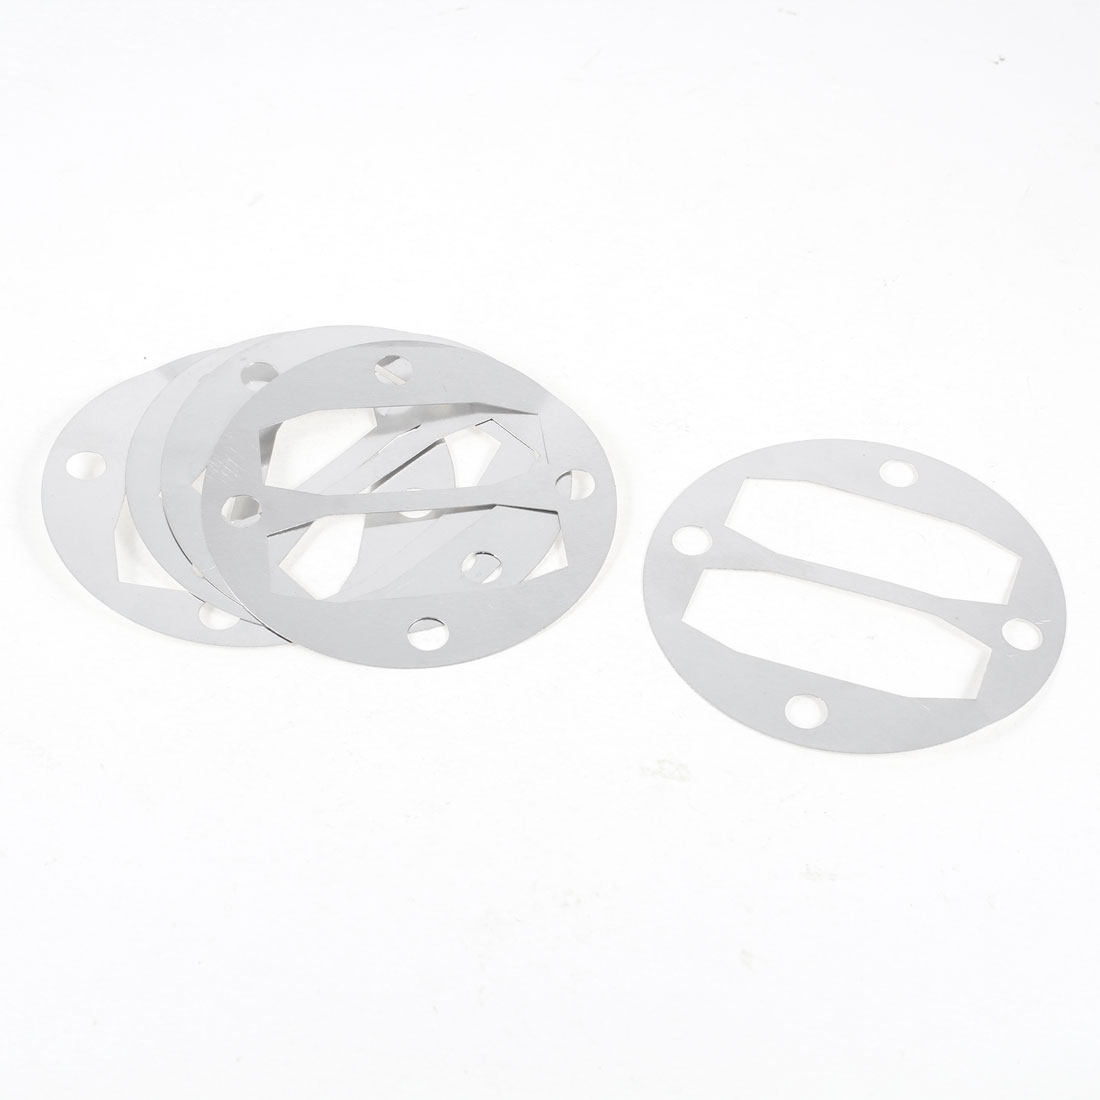 5 Pcs Aluminum Round Air Compressor Cylinder Head Gaskets Washers